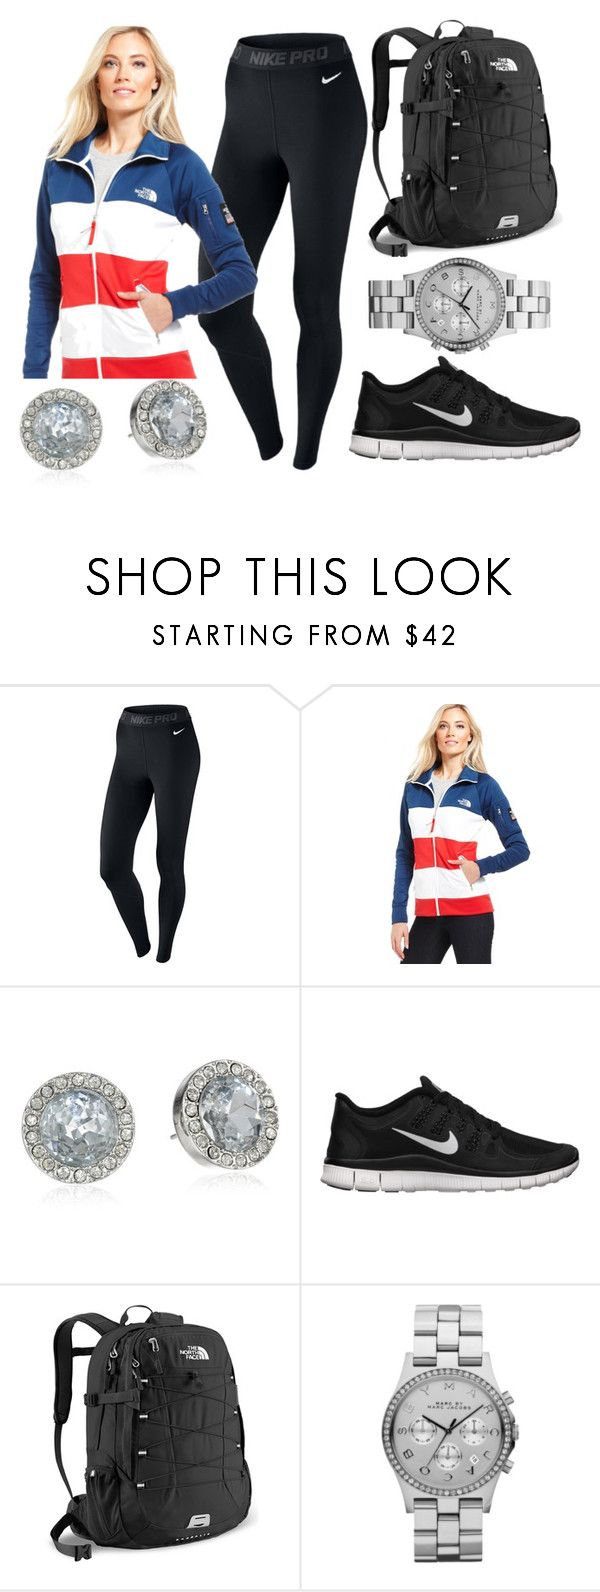 """School outfit"" by stylesbowtie ❤ liked on Polyvore featuring NIKE, The North Face, Juicy Couture and Marc by Marc Jacobs"